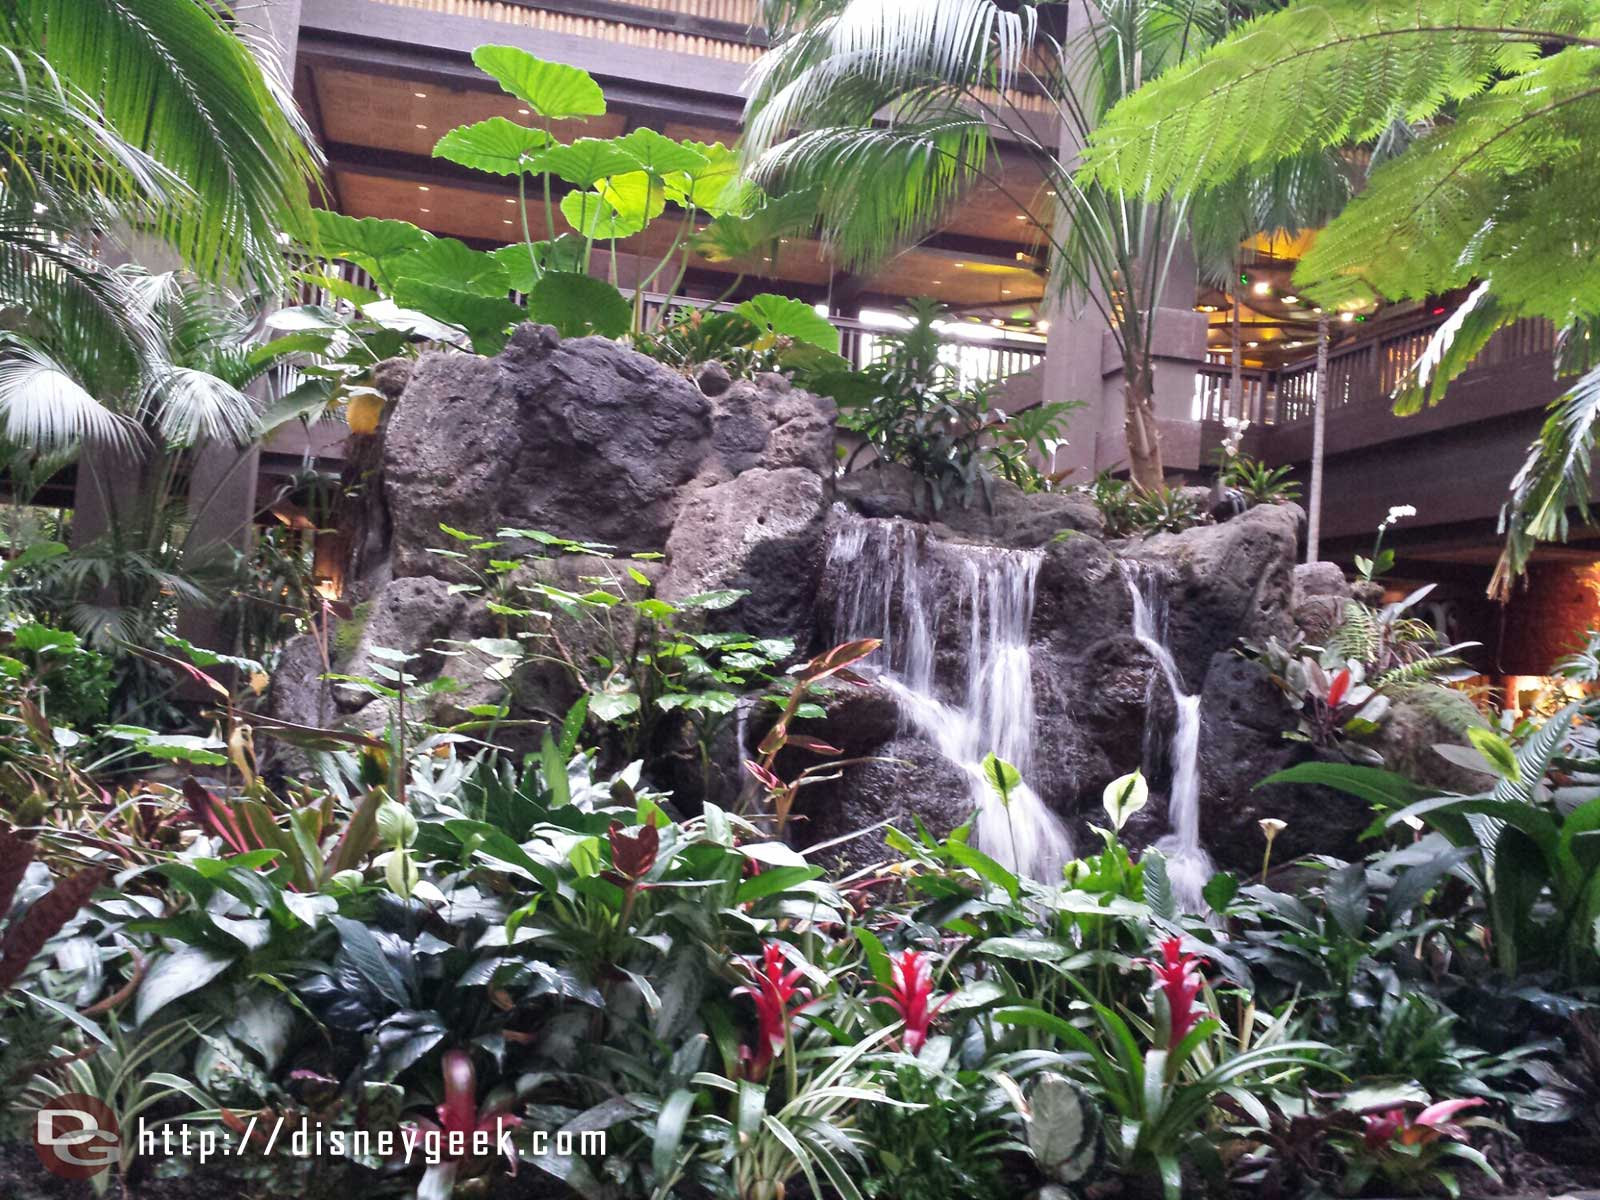 A look at the Polynesian lobby fountain before it is removed.